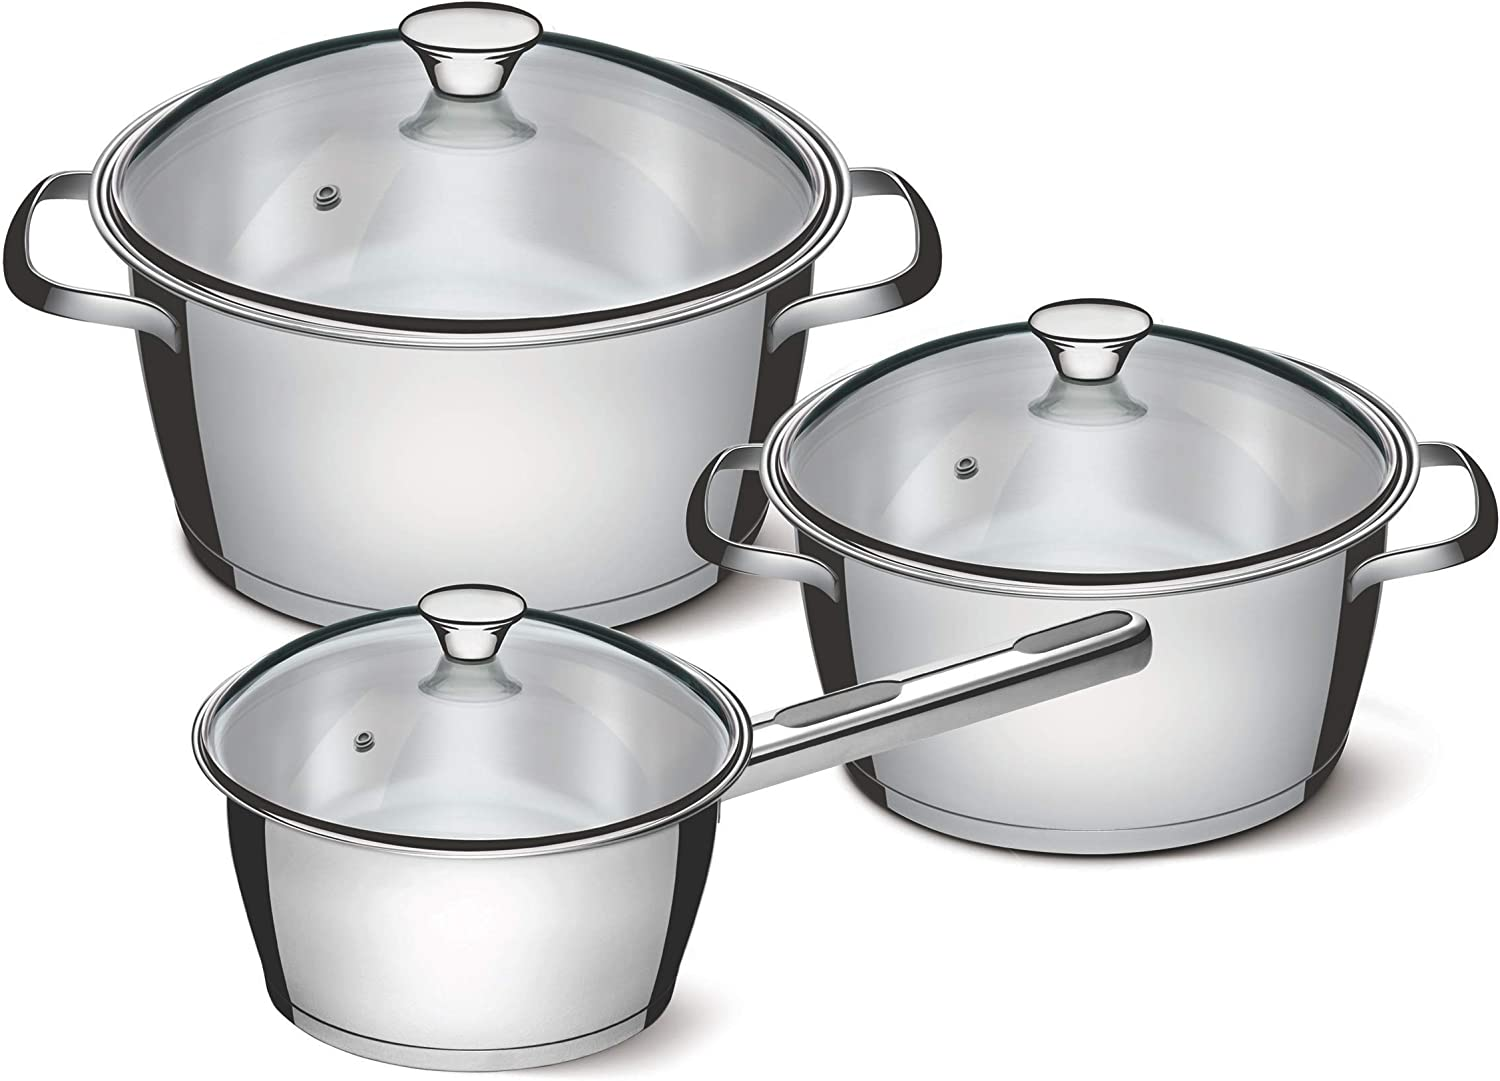 Tramontina 65660/484 Cookware Set, Stainless Steel